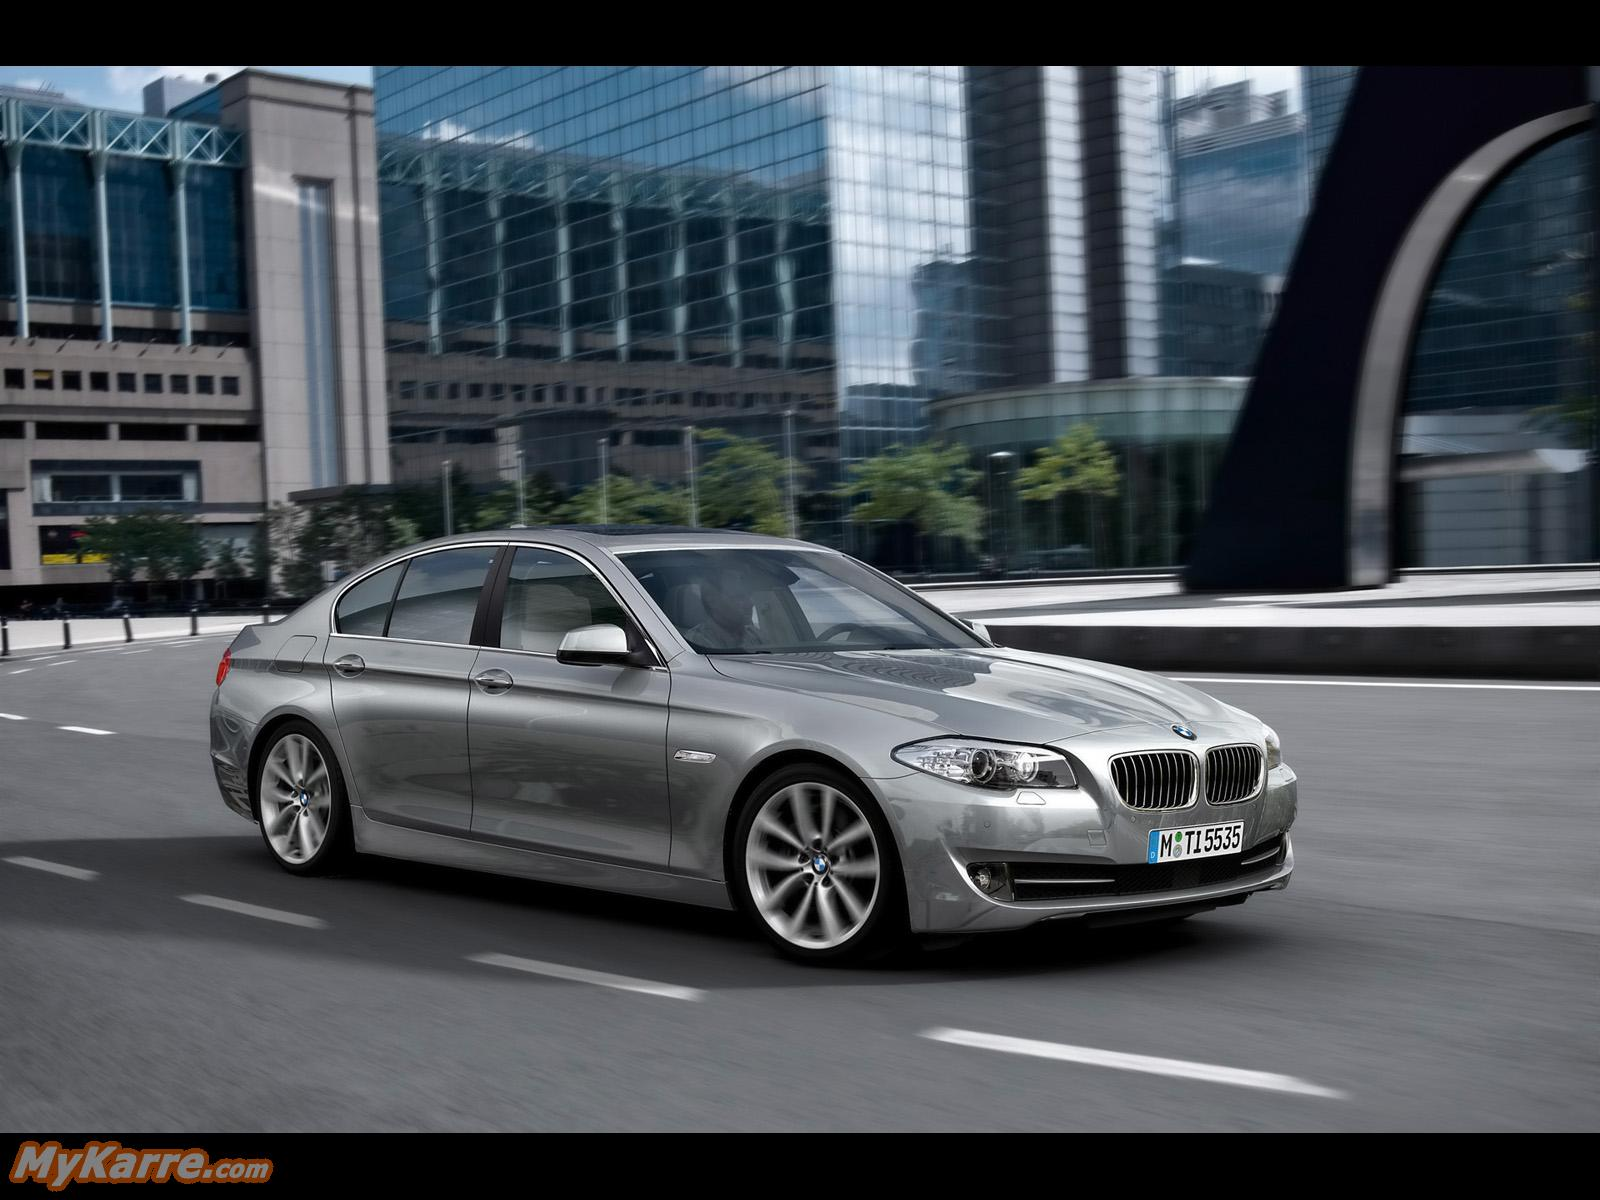 bmw 5er f10 520d 184hp car technical data power torque fuel tank capacity fuel consumption. Black Bedroom Furniture Sets. Home Design Ideas